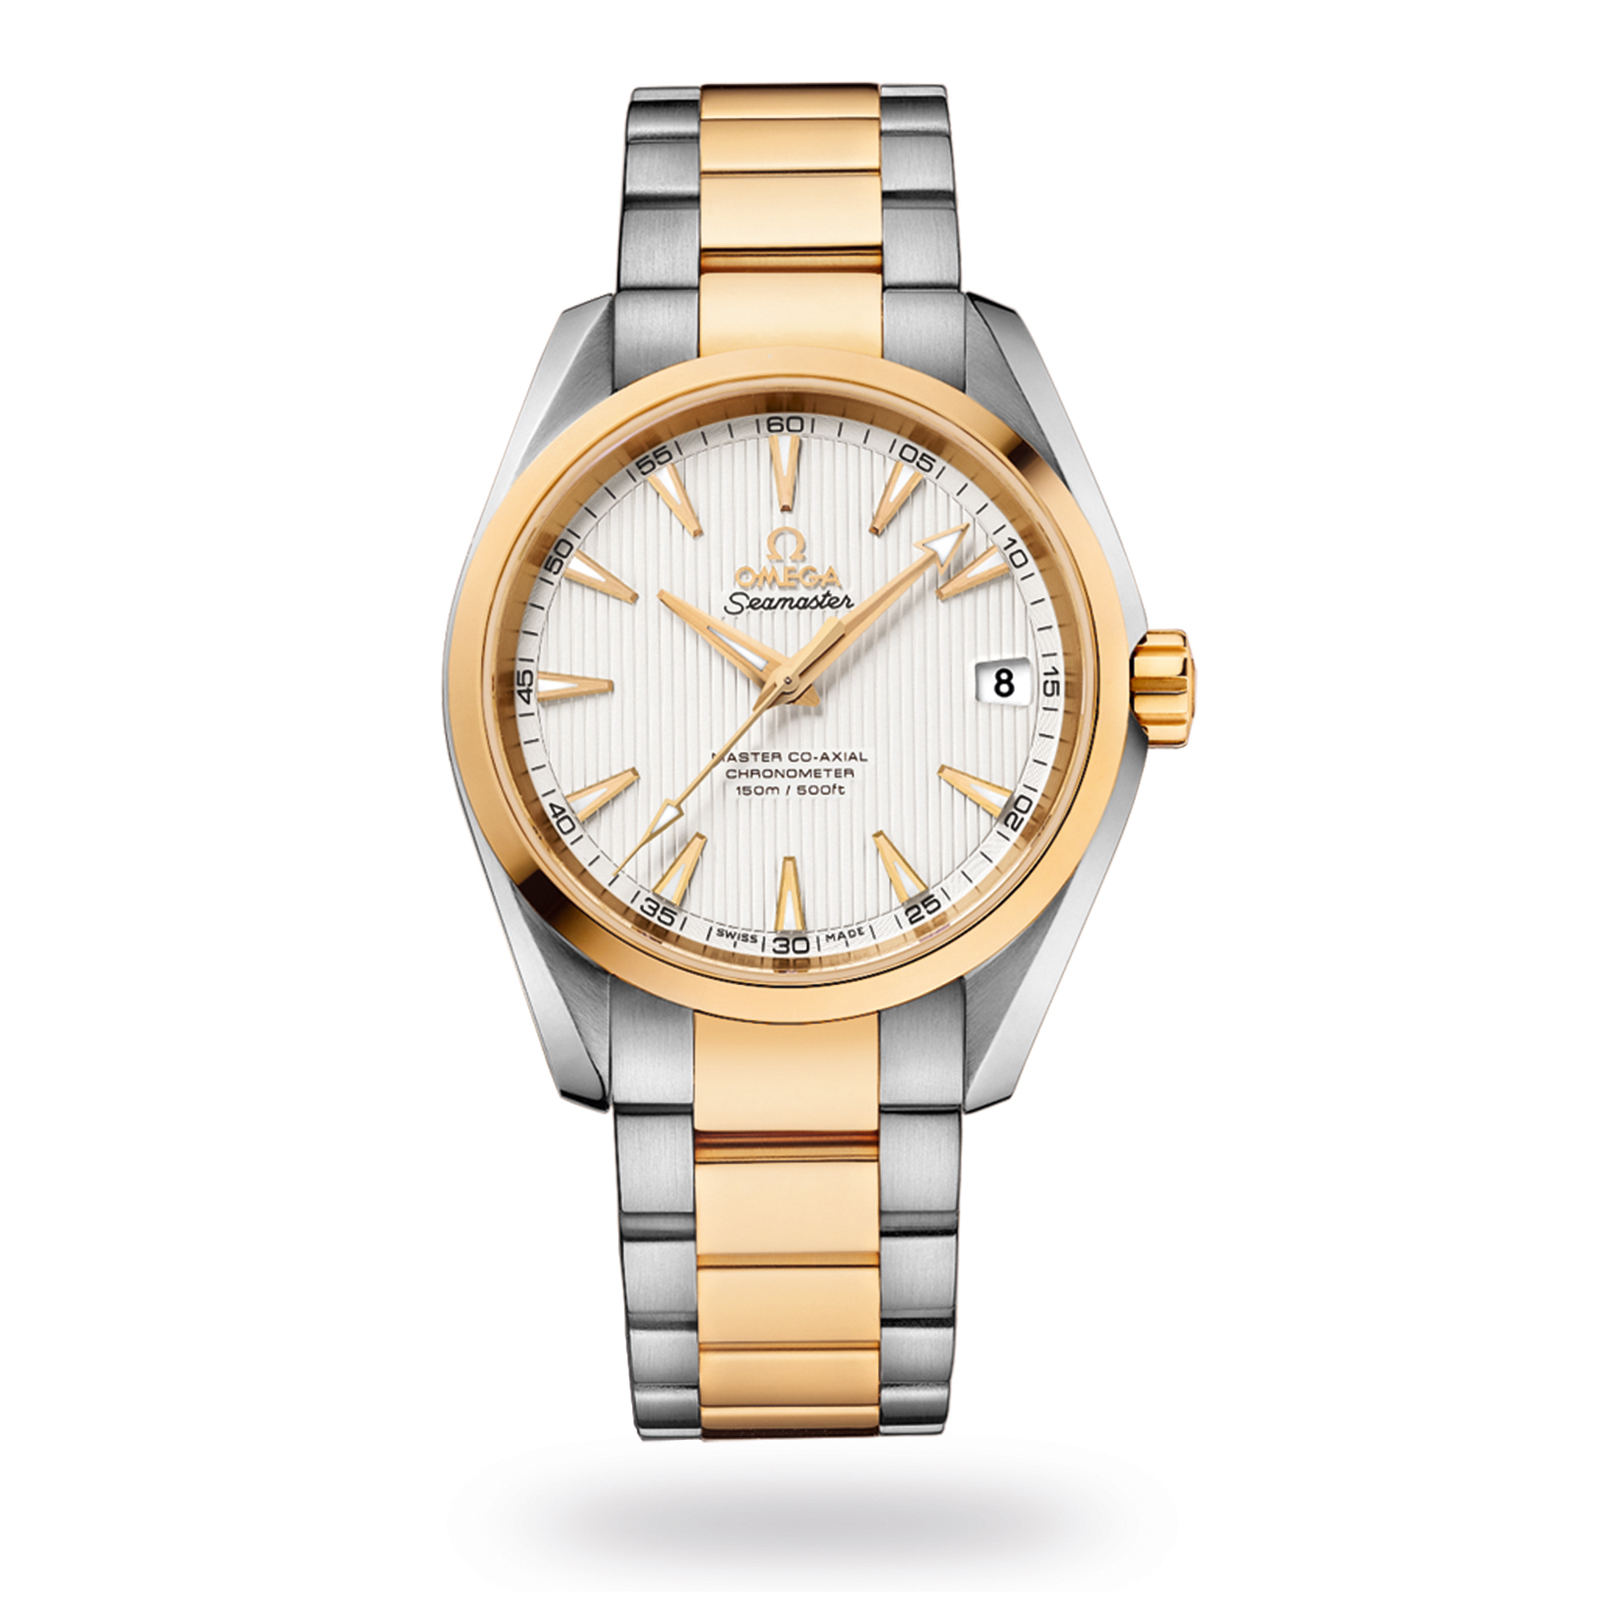 Omega Seamaster Aqua Terra Master Co-Axial 38.5mm Mens Watch